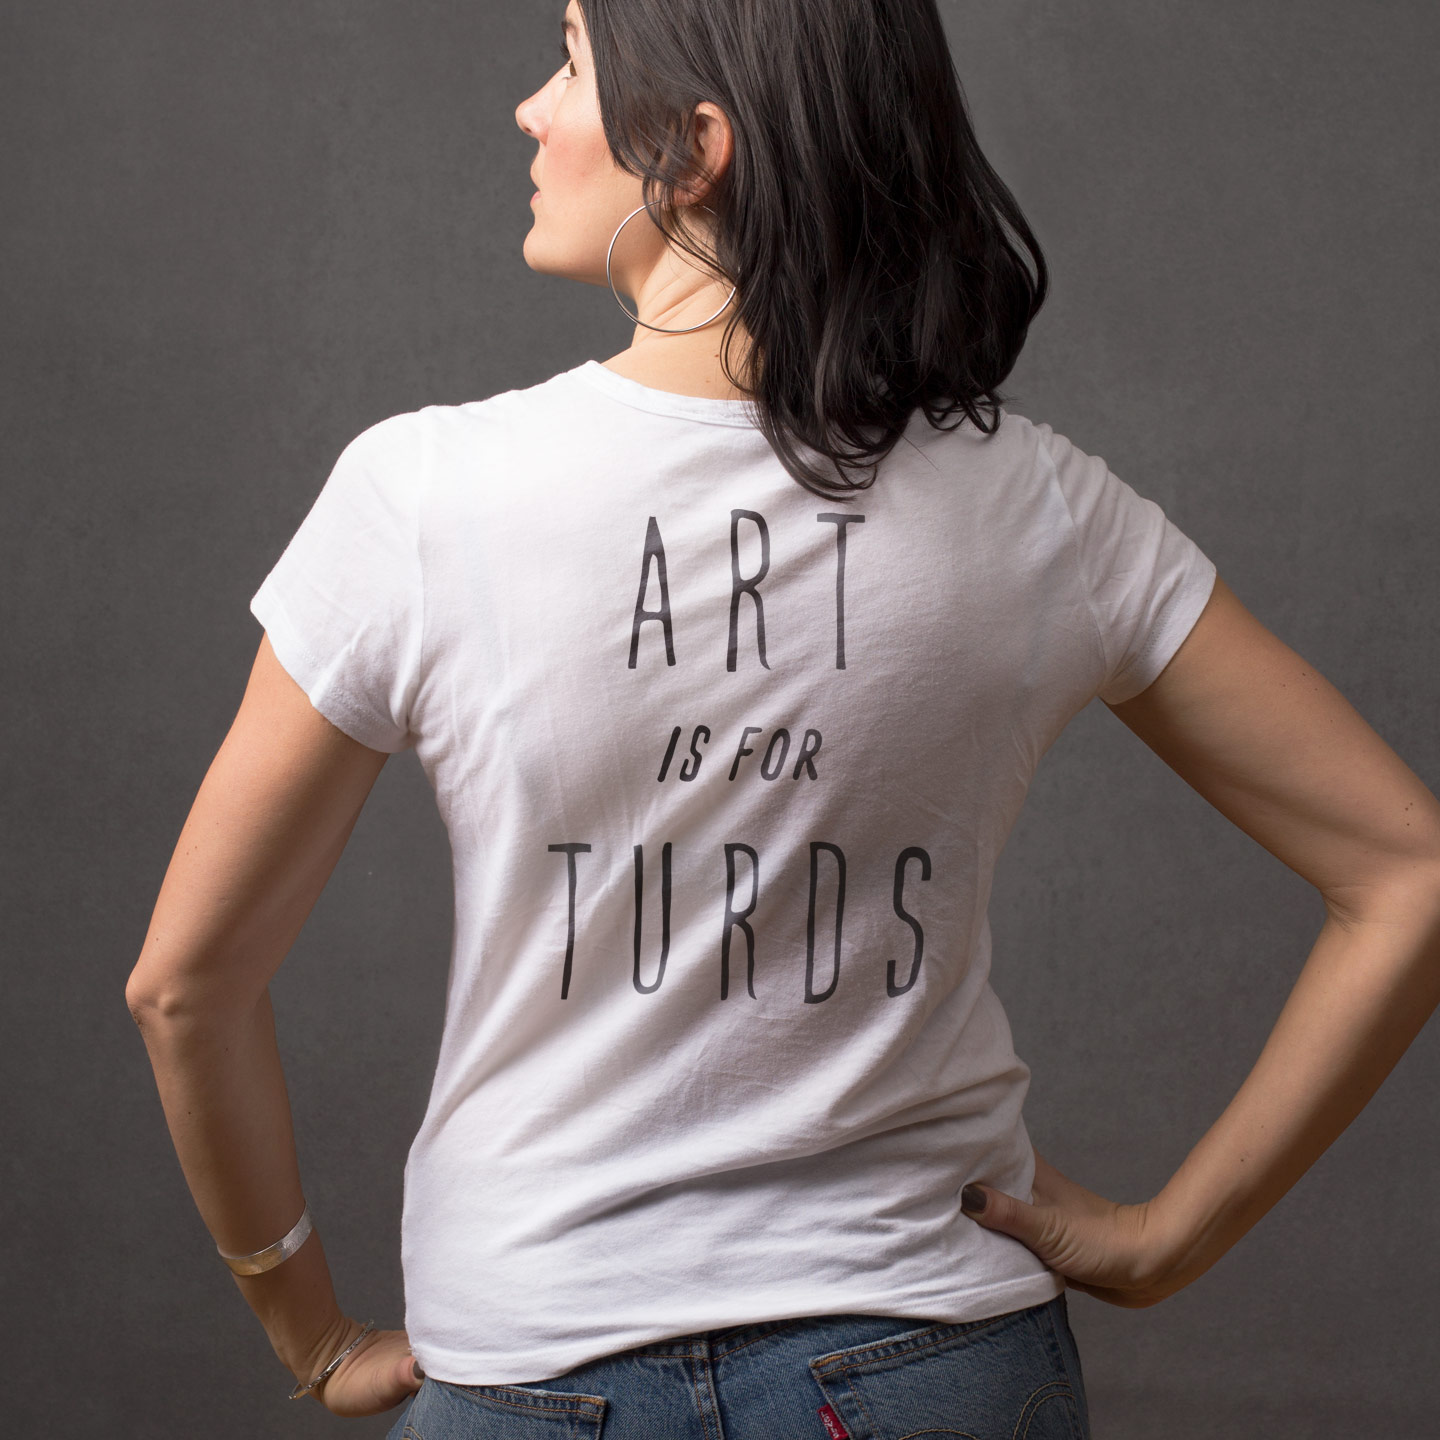 art-is-for-turds_womens_tee_1440x1440-5.jpg